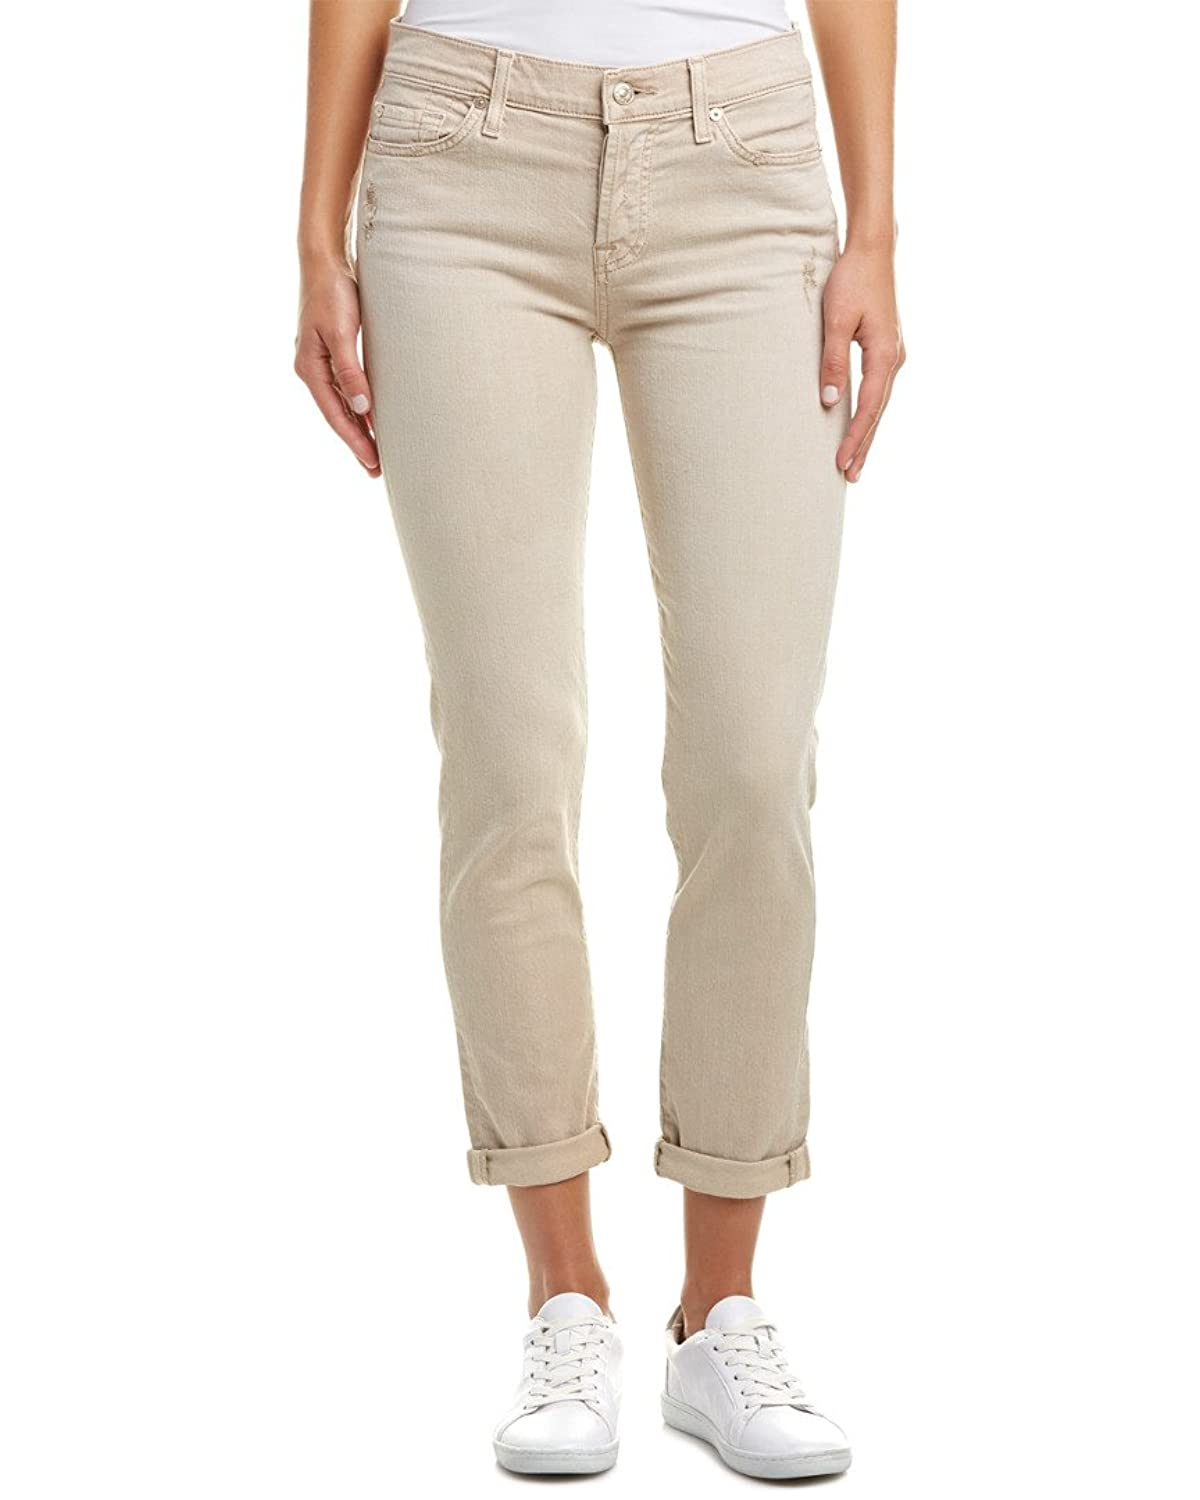 7 For All Mankind Women's Josefina with Rolled Hem in Almond